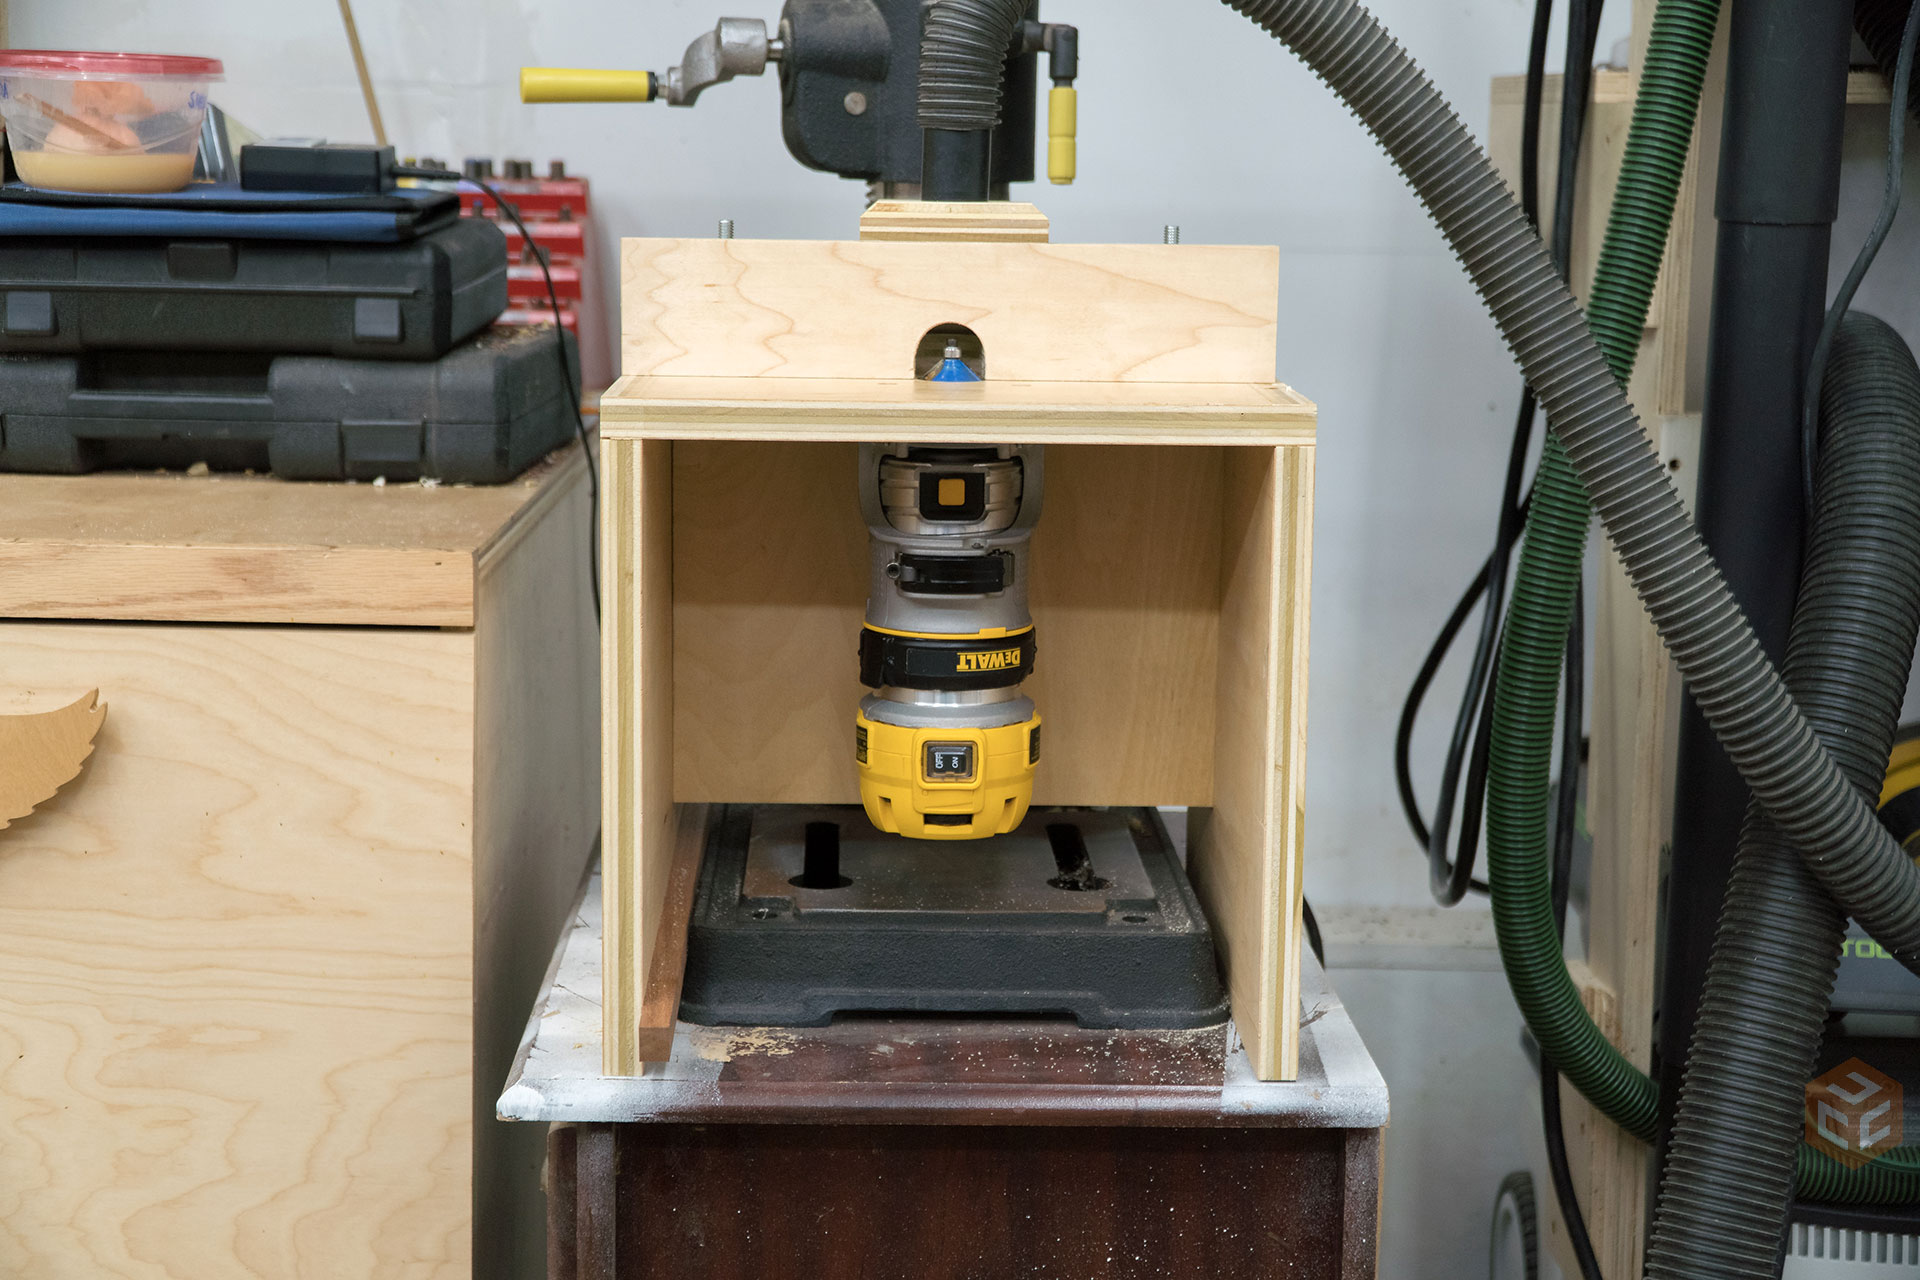 Diy Benchtop Router Table Diy Benchtop Router Table Diy Do It Your Self